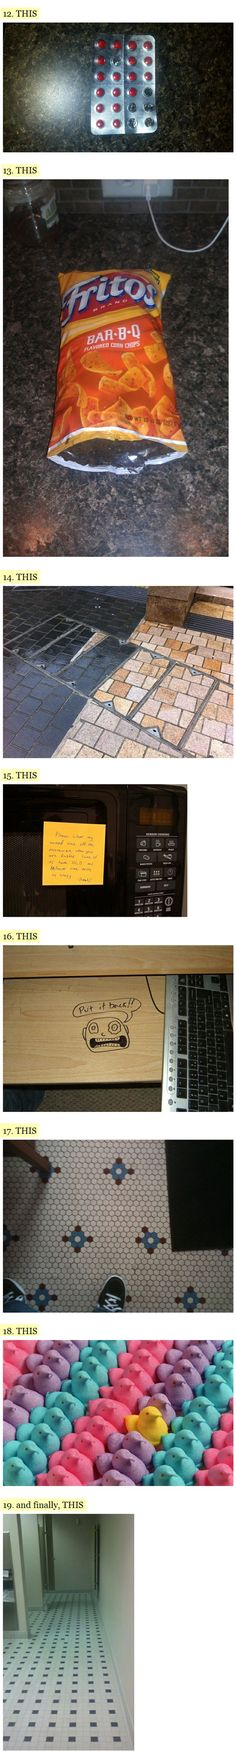 19 Things That Will Drive Your OCD Self Insane - The Meta Picture